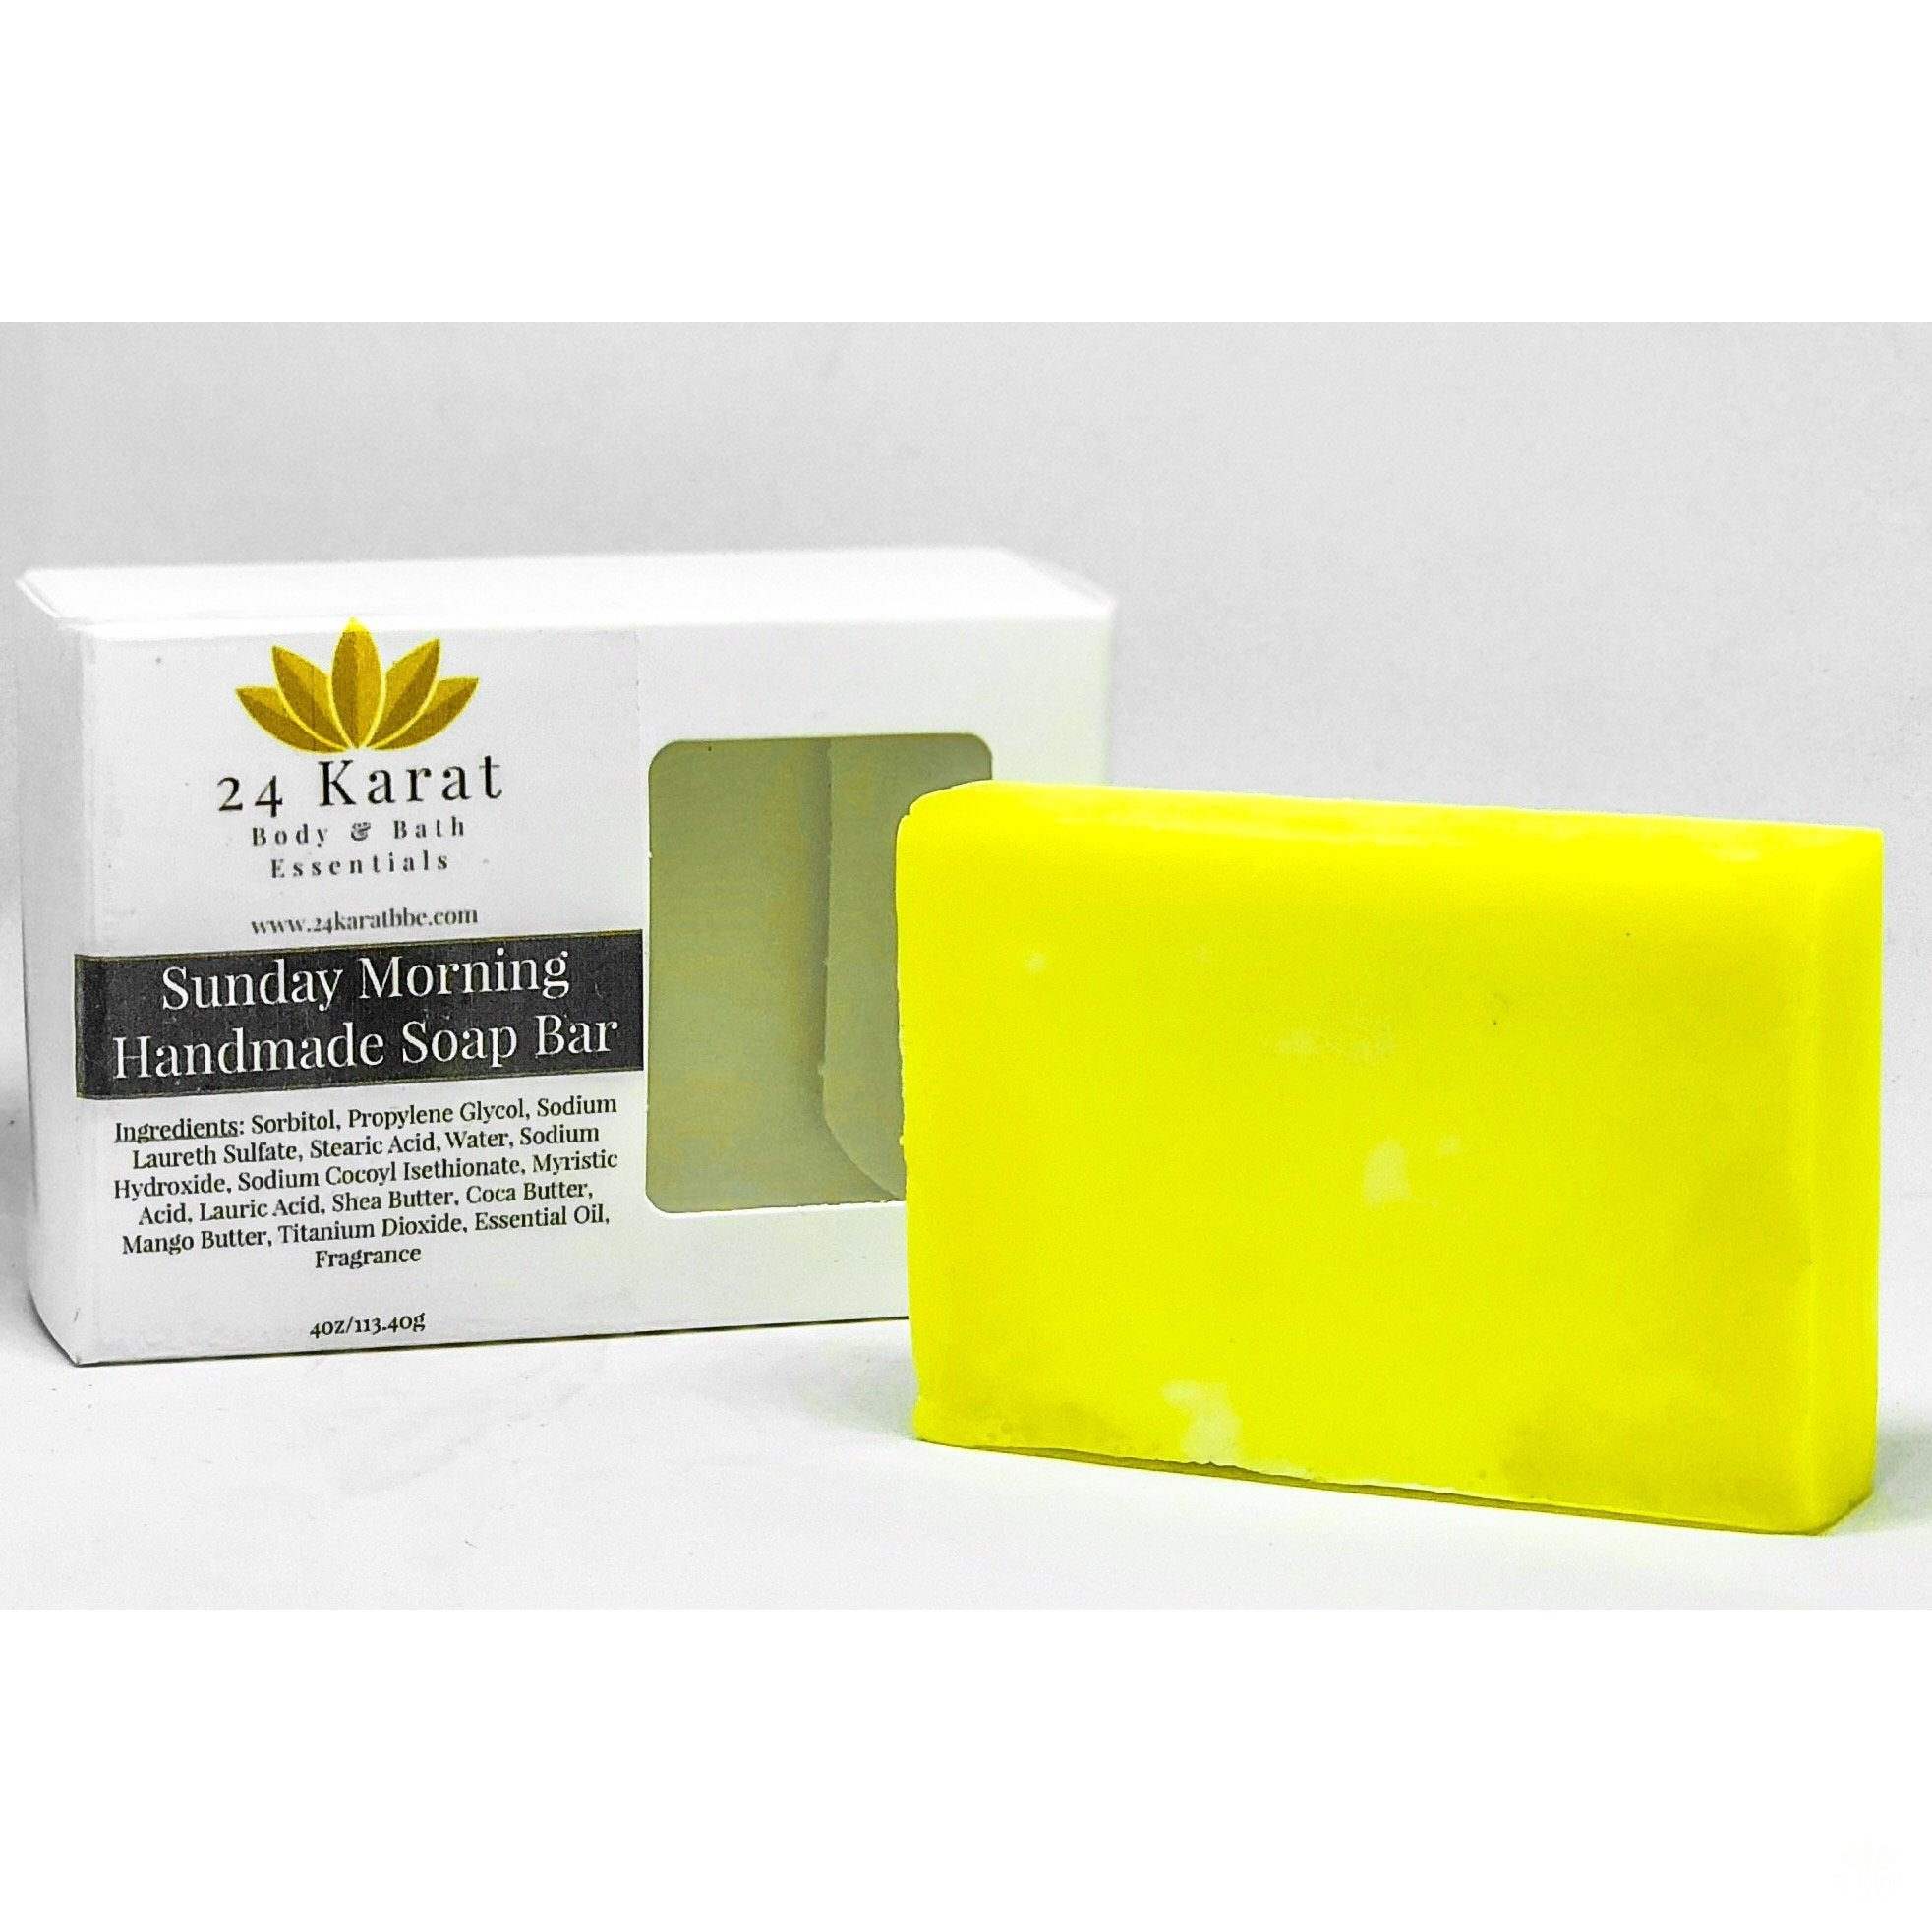 Triple Butter Handmade Soap Bar - 24 Karat Body & Bath Essentials